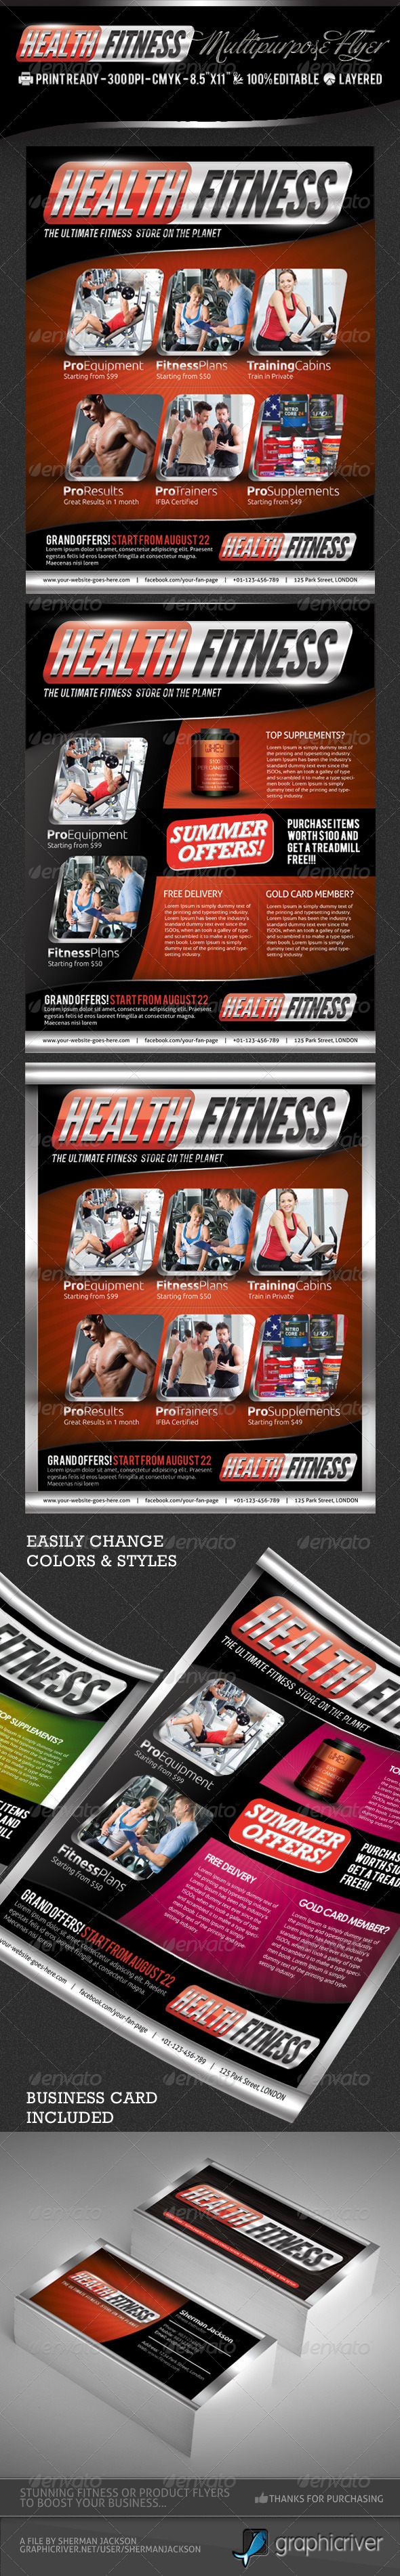 Health & Fitness Pro Flyer & Business Card PSD - Commerce Flyers